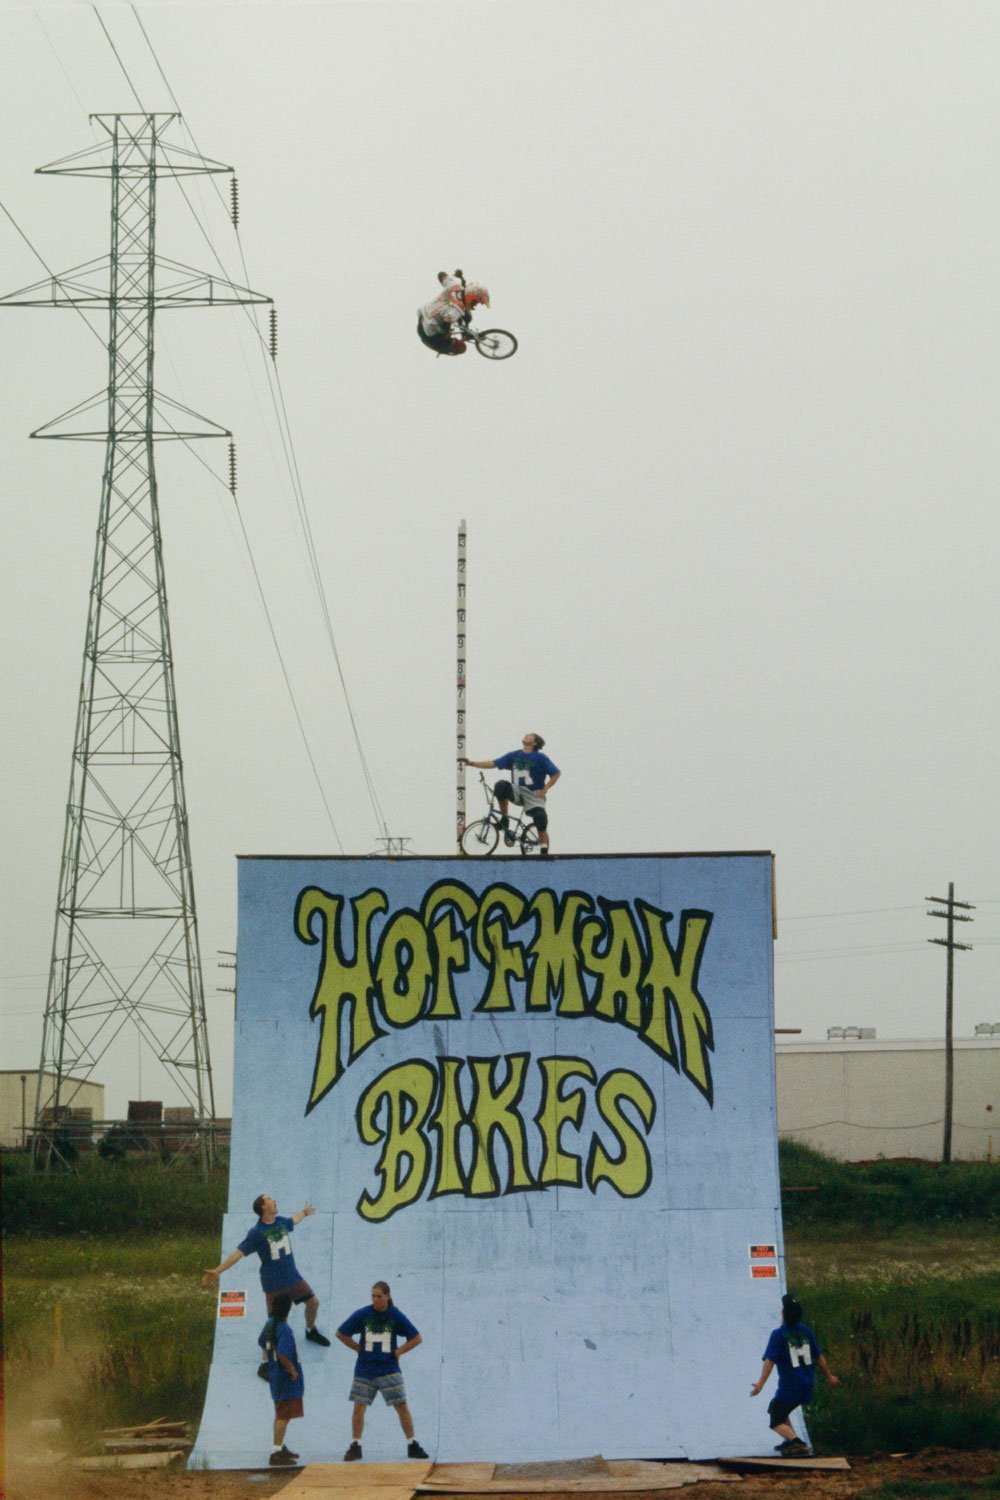 https://hoffmanbikes.com/wp-content/uploads/2015/11/Mat-Hoffman-1991-Big-Air.jpg